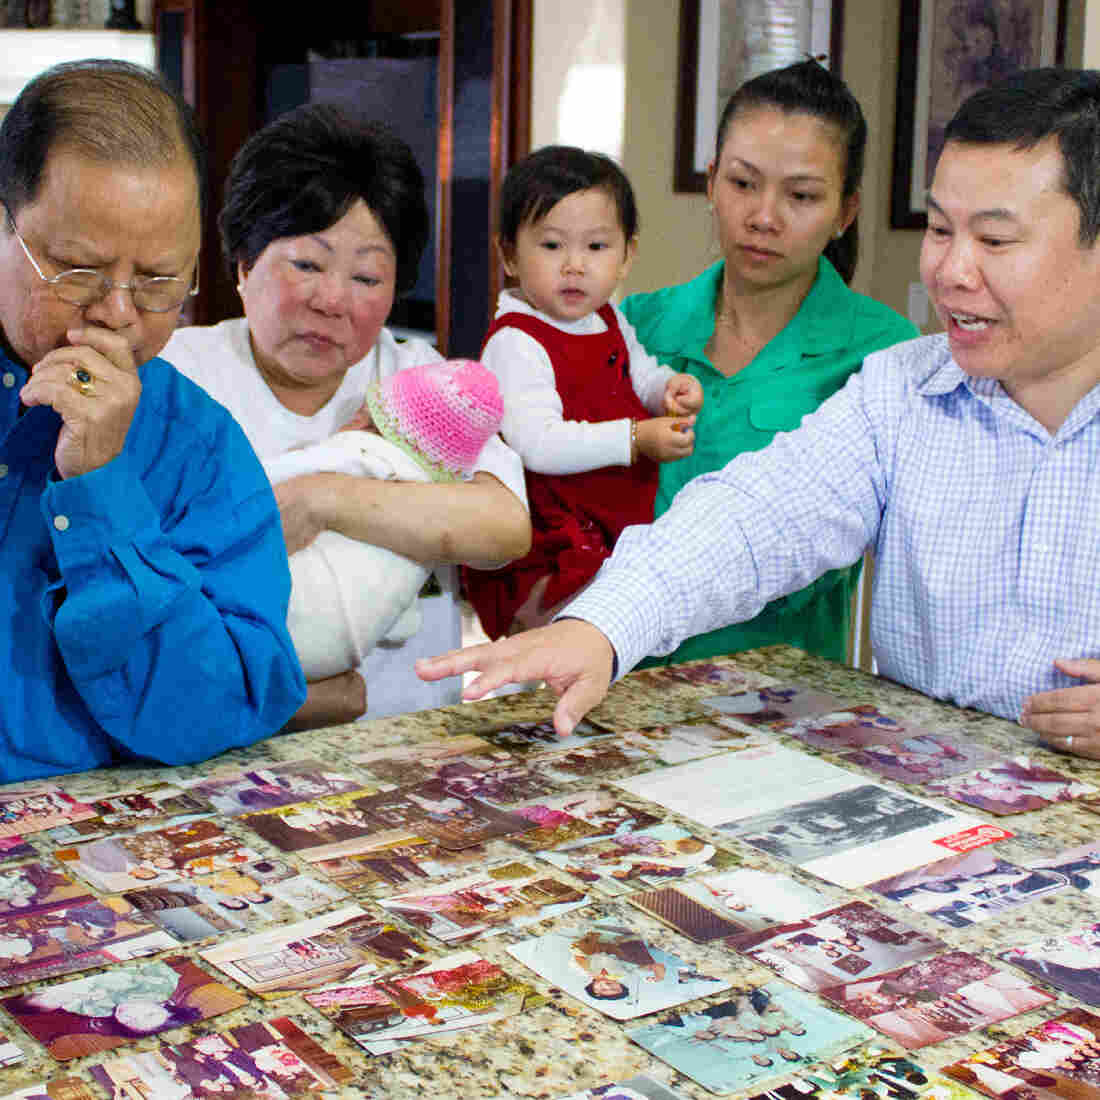 Members of the Nguyen family, including Harry, Tammy, Elizabeth, Emma, Elly and Quan, look through family photos.